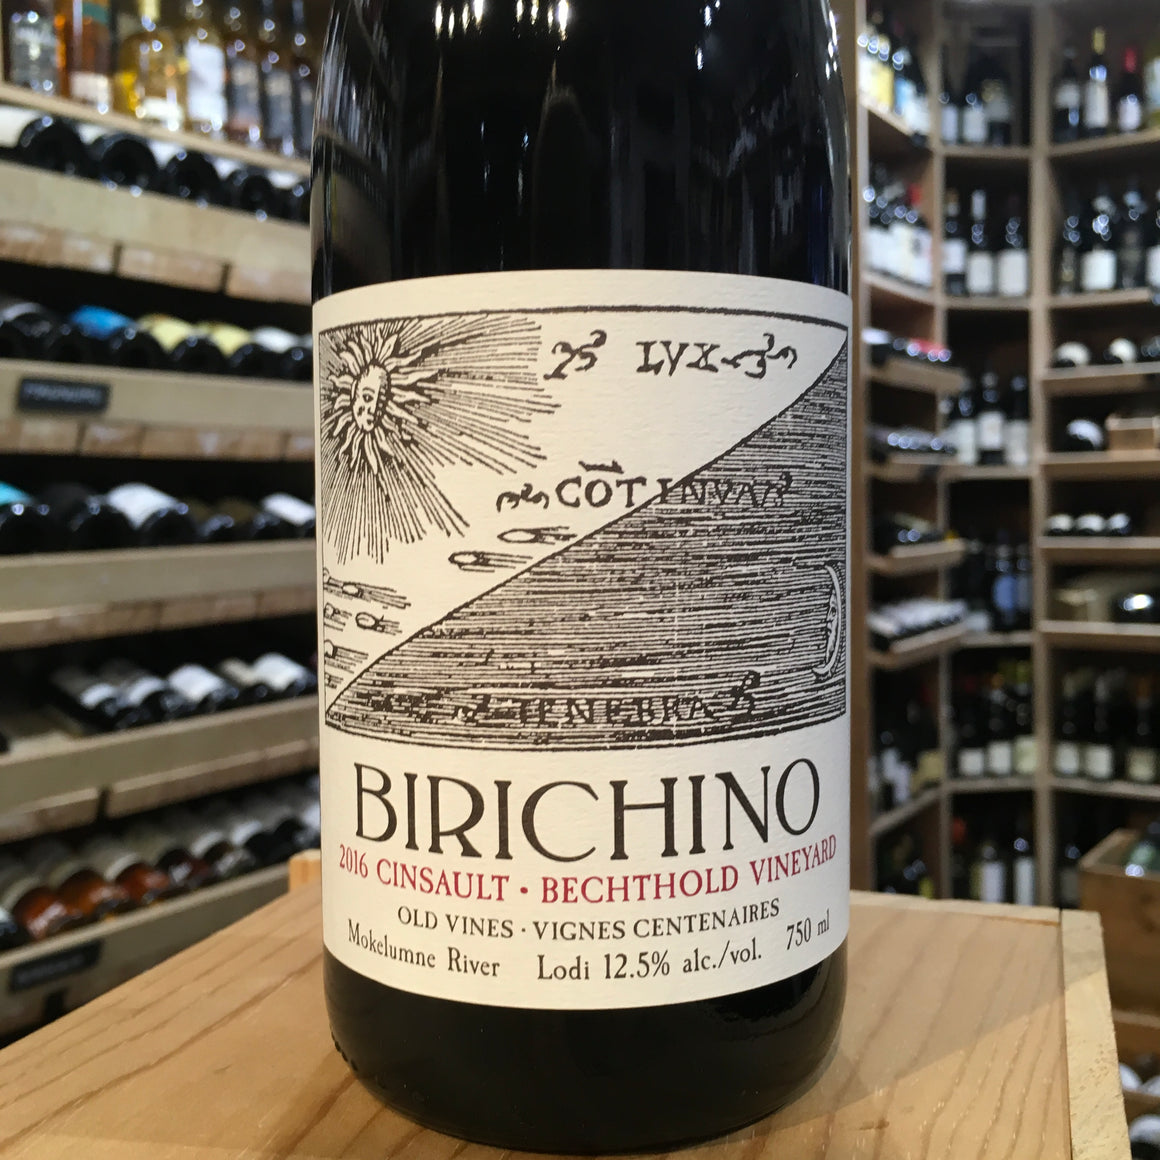 Birichino Bechthold Vineyard Mokelumne River Lodi Cinsault Old Vines 2016